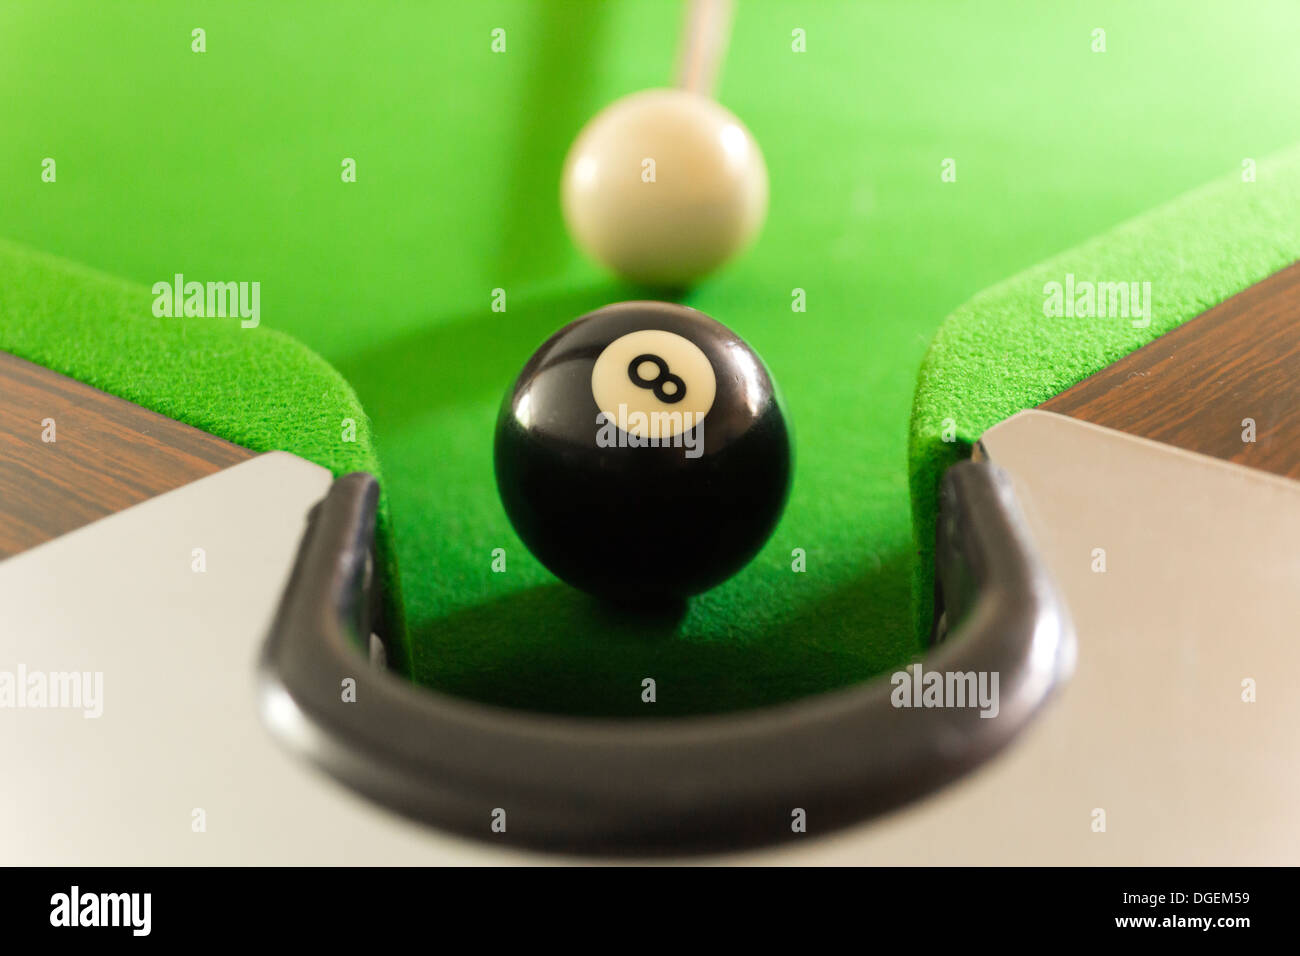 Eightball about to enter the pocket - Stock Image